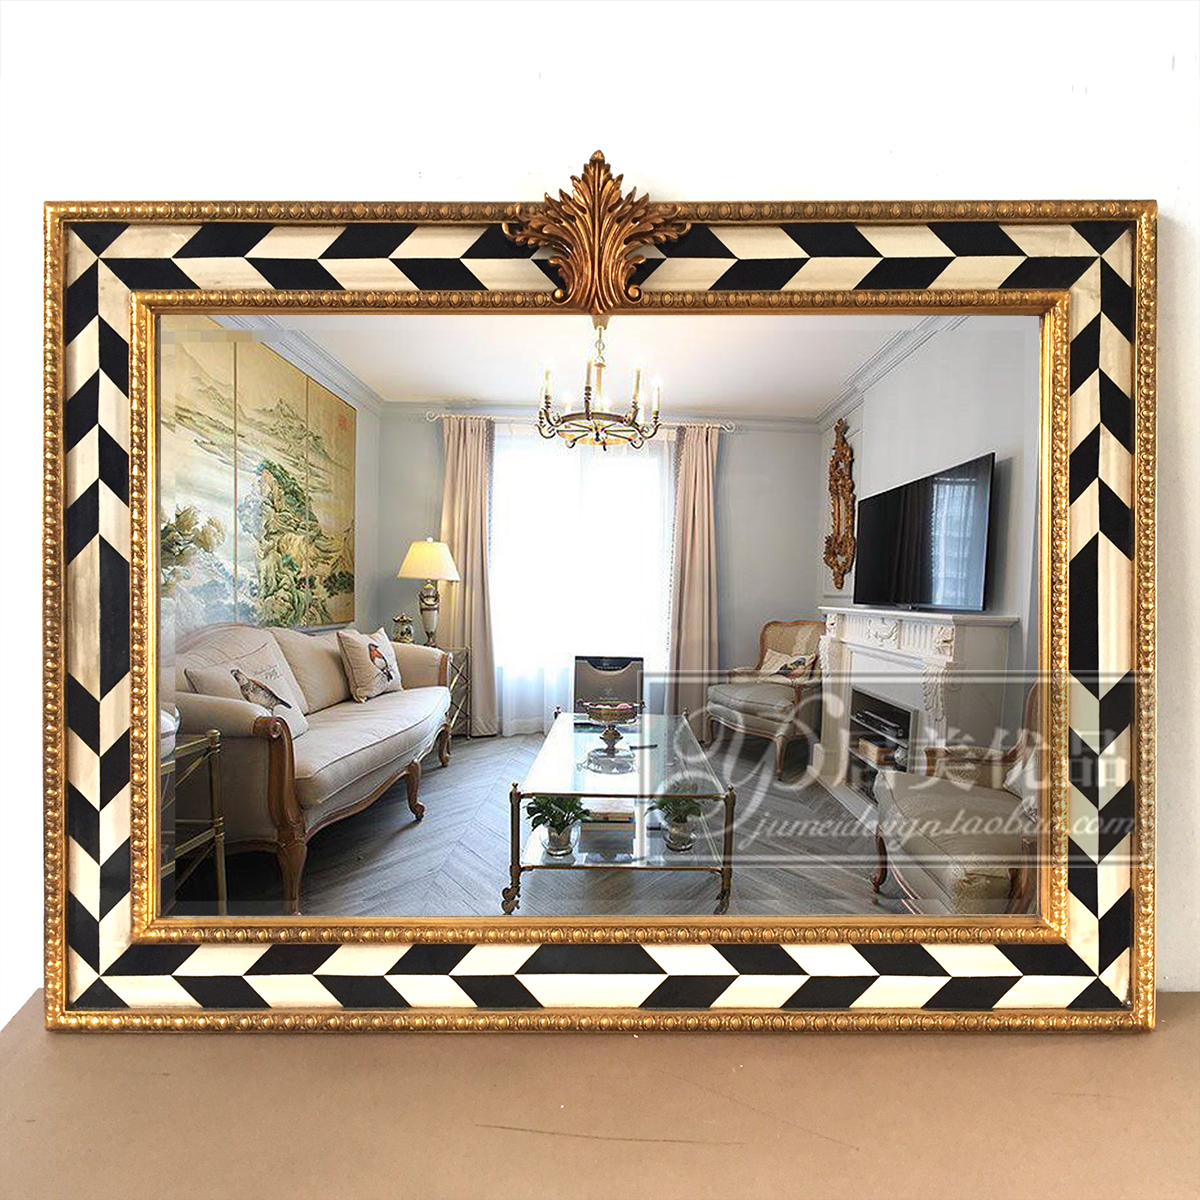 Decorative Mirror Decorative Mirror Entrance Mirror Fireplace Mirror European Wall Mirror French Bathroom Mirror American Dining Room Living Room Wall Mirror